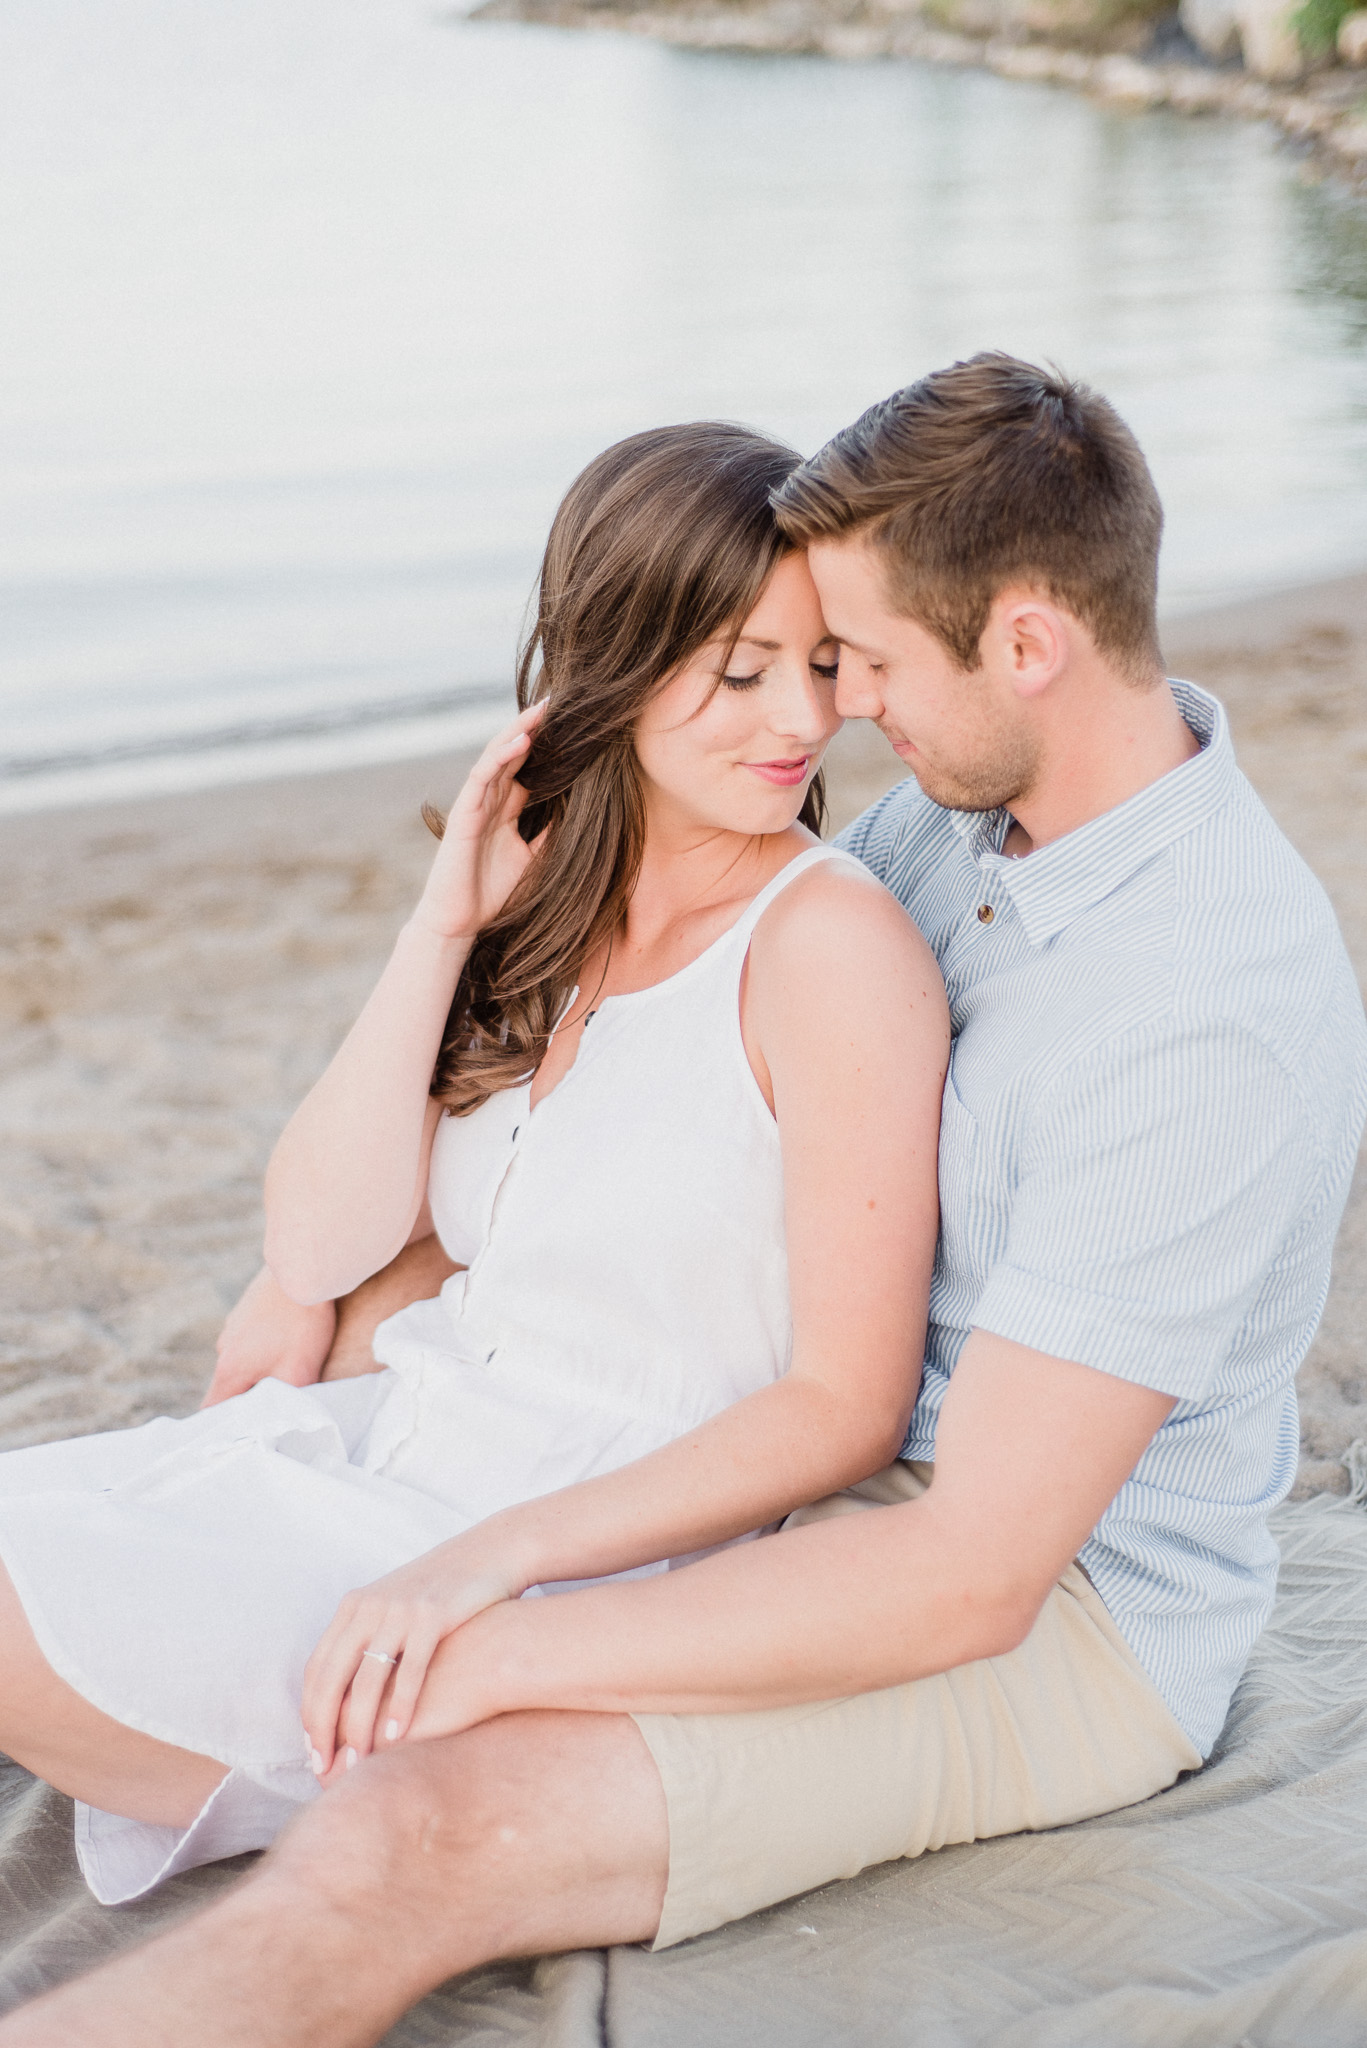 Nautical engagement photos by Jenn Kavanagh Photography